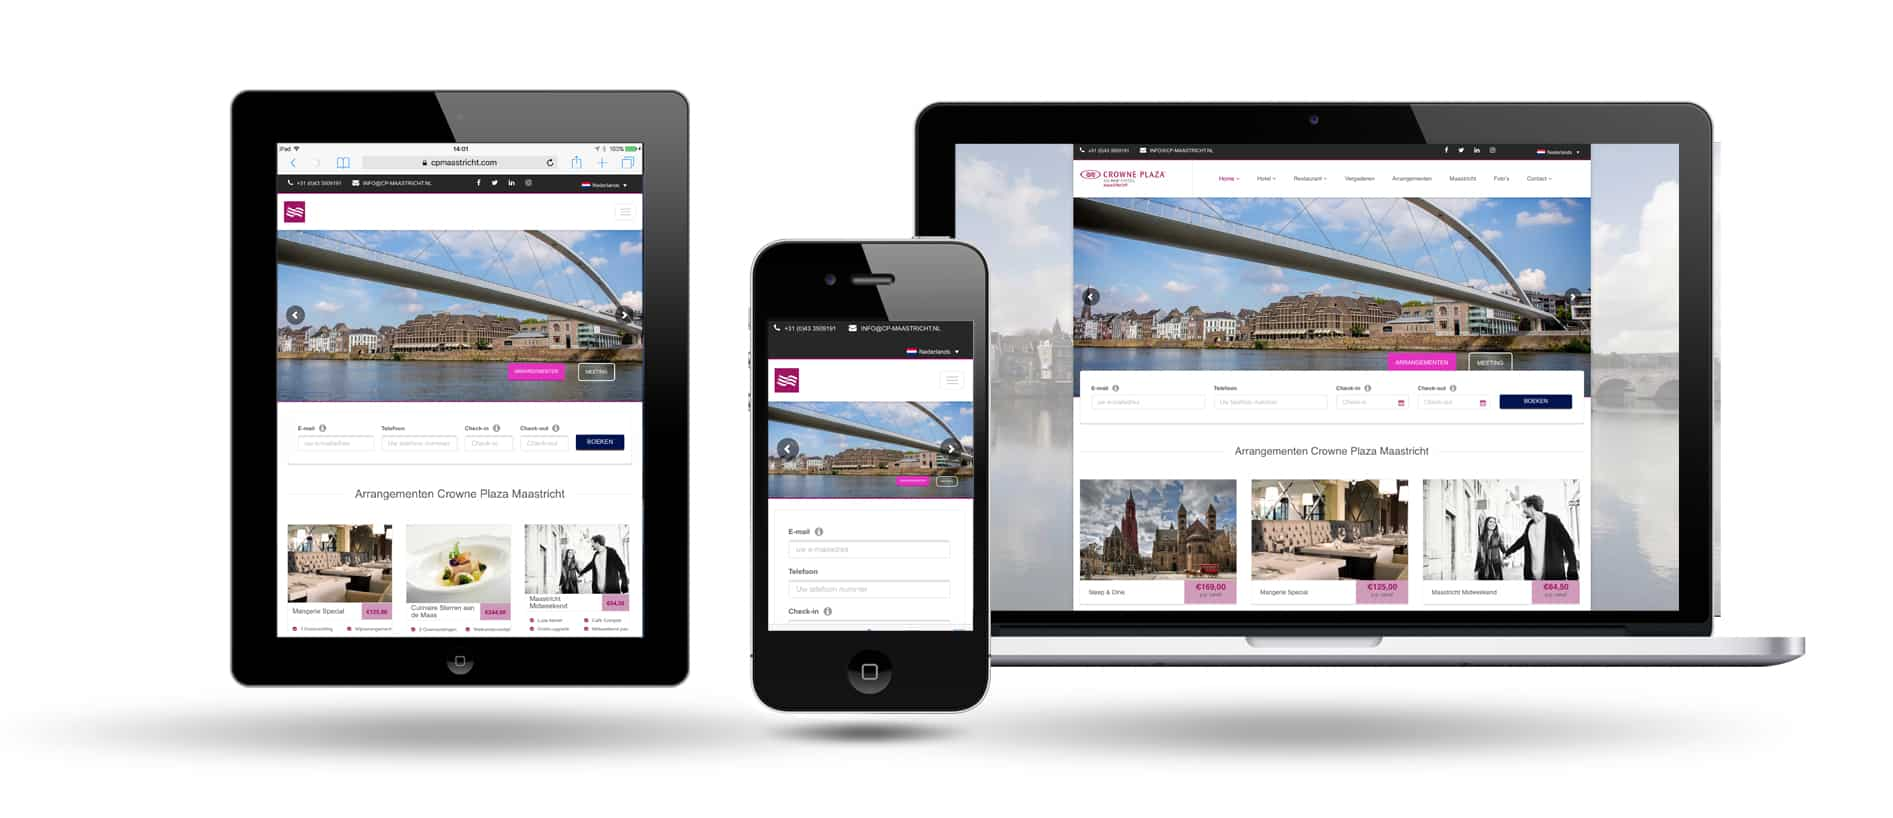 Hotel Crowne Plaza by Webdesign Maastricht